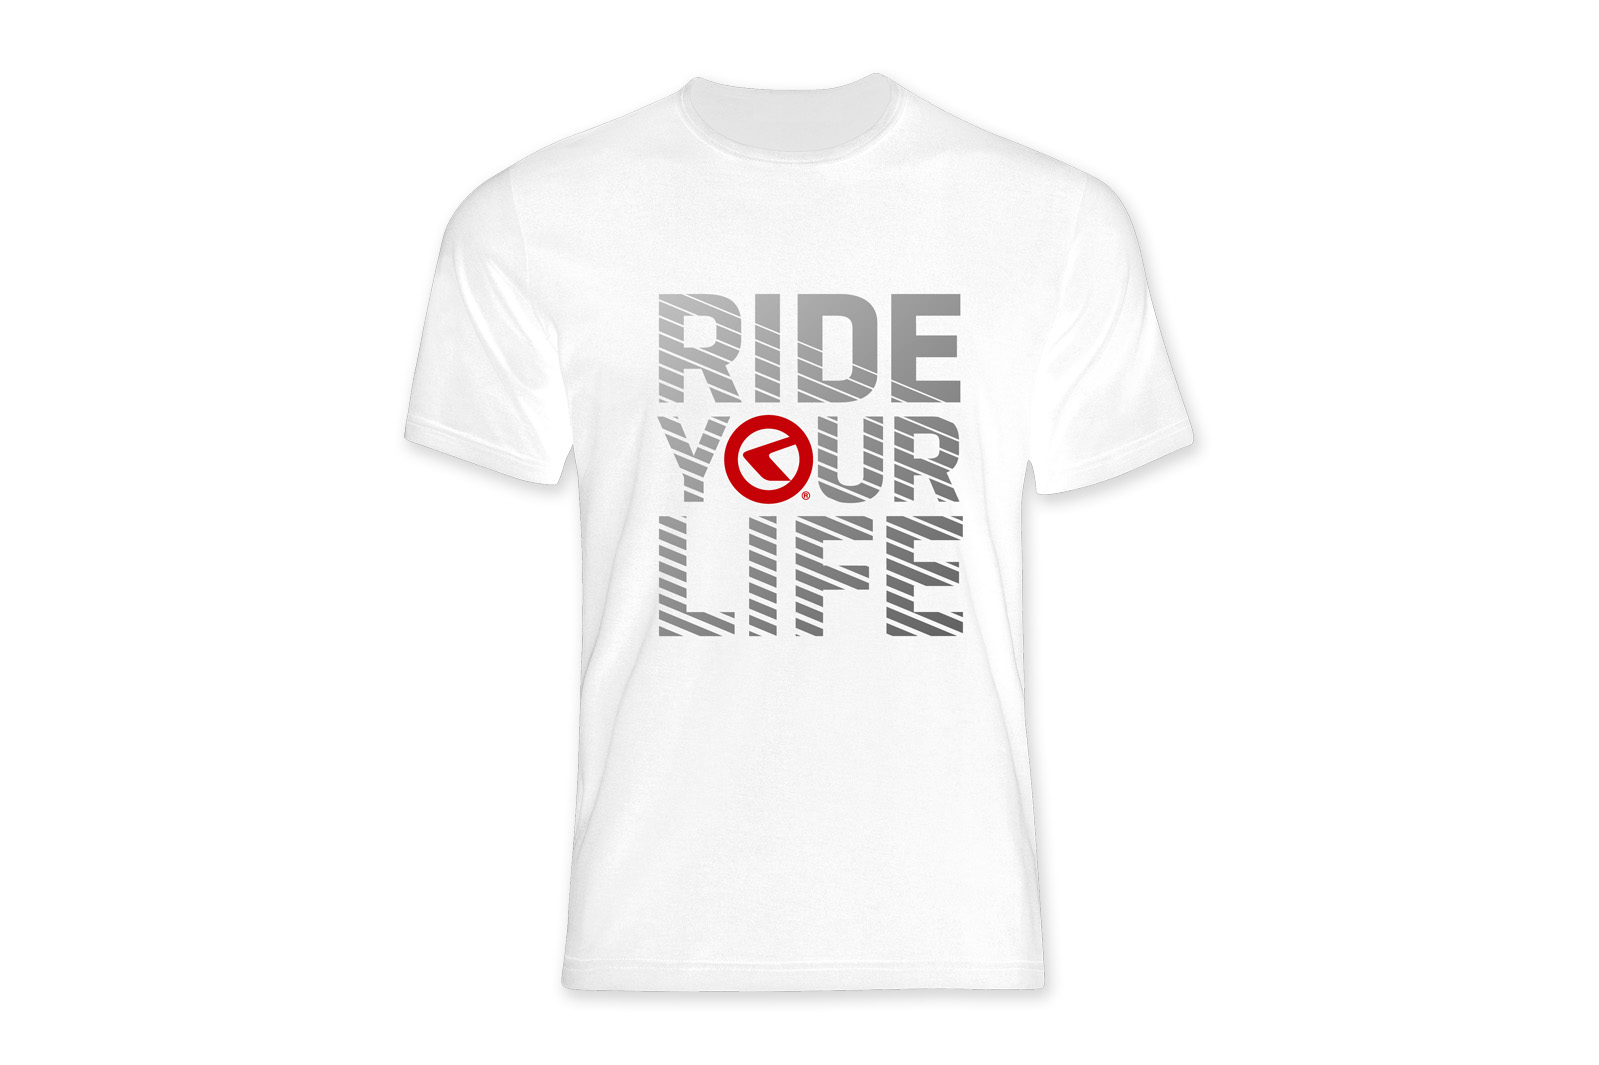 T-Shirt KELLYS RIDE YOUR LIFE kurzarm white - L - Mega Handelsgesellschaft